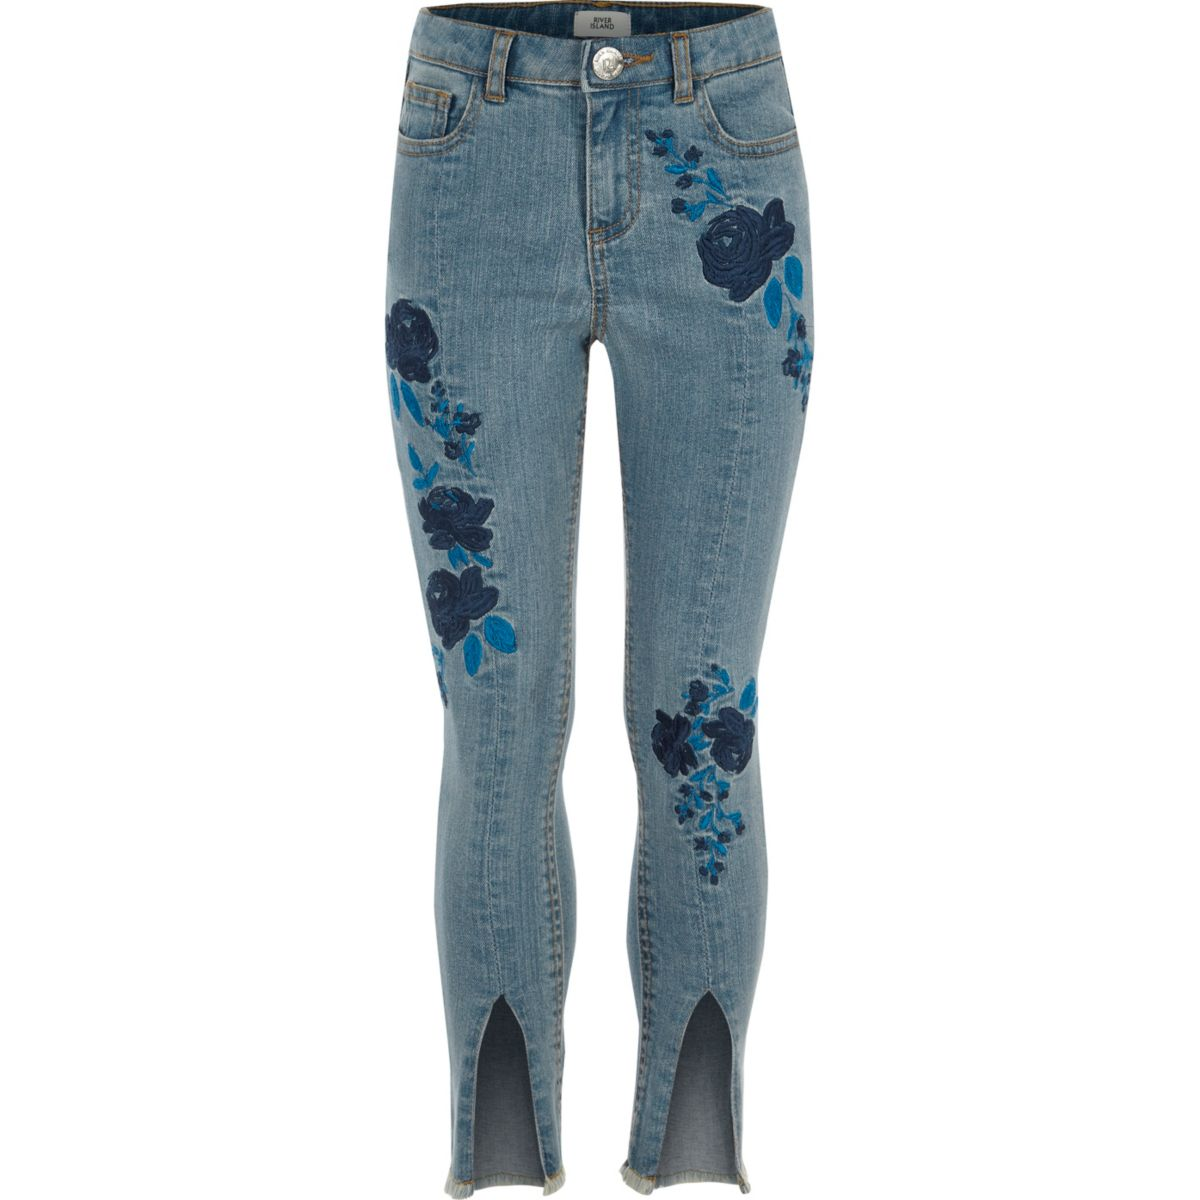 Girls Blue Amelie Embroidered Jeans - Denim - Sale - Girls